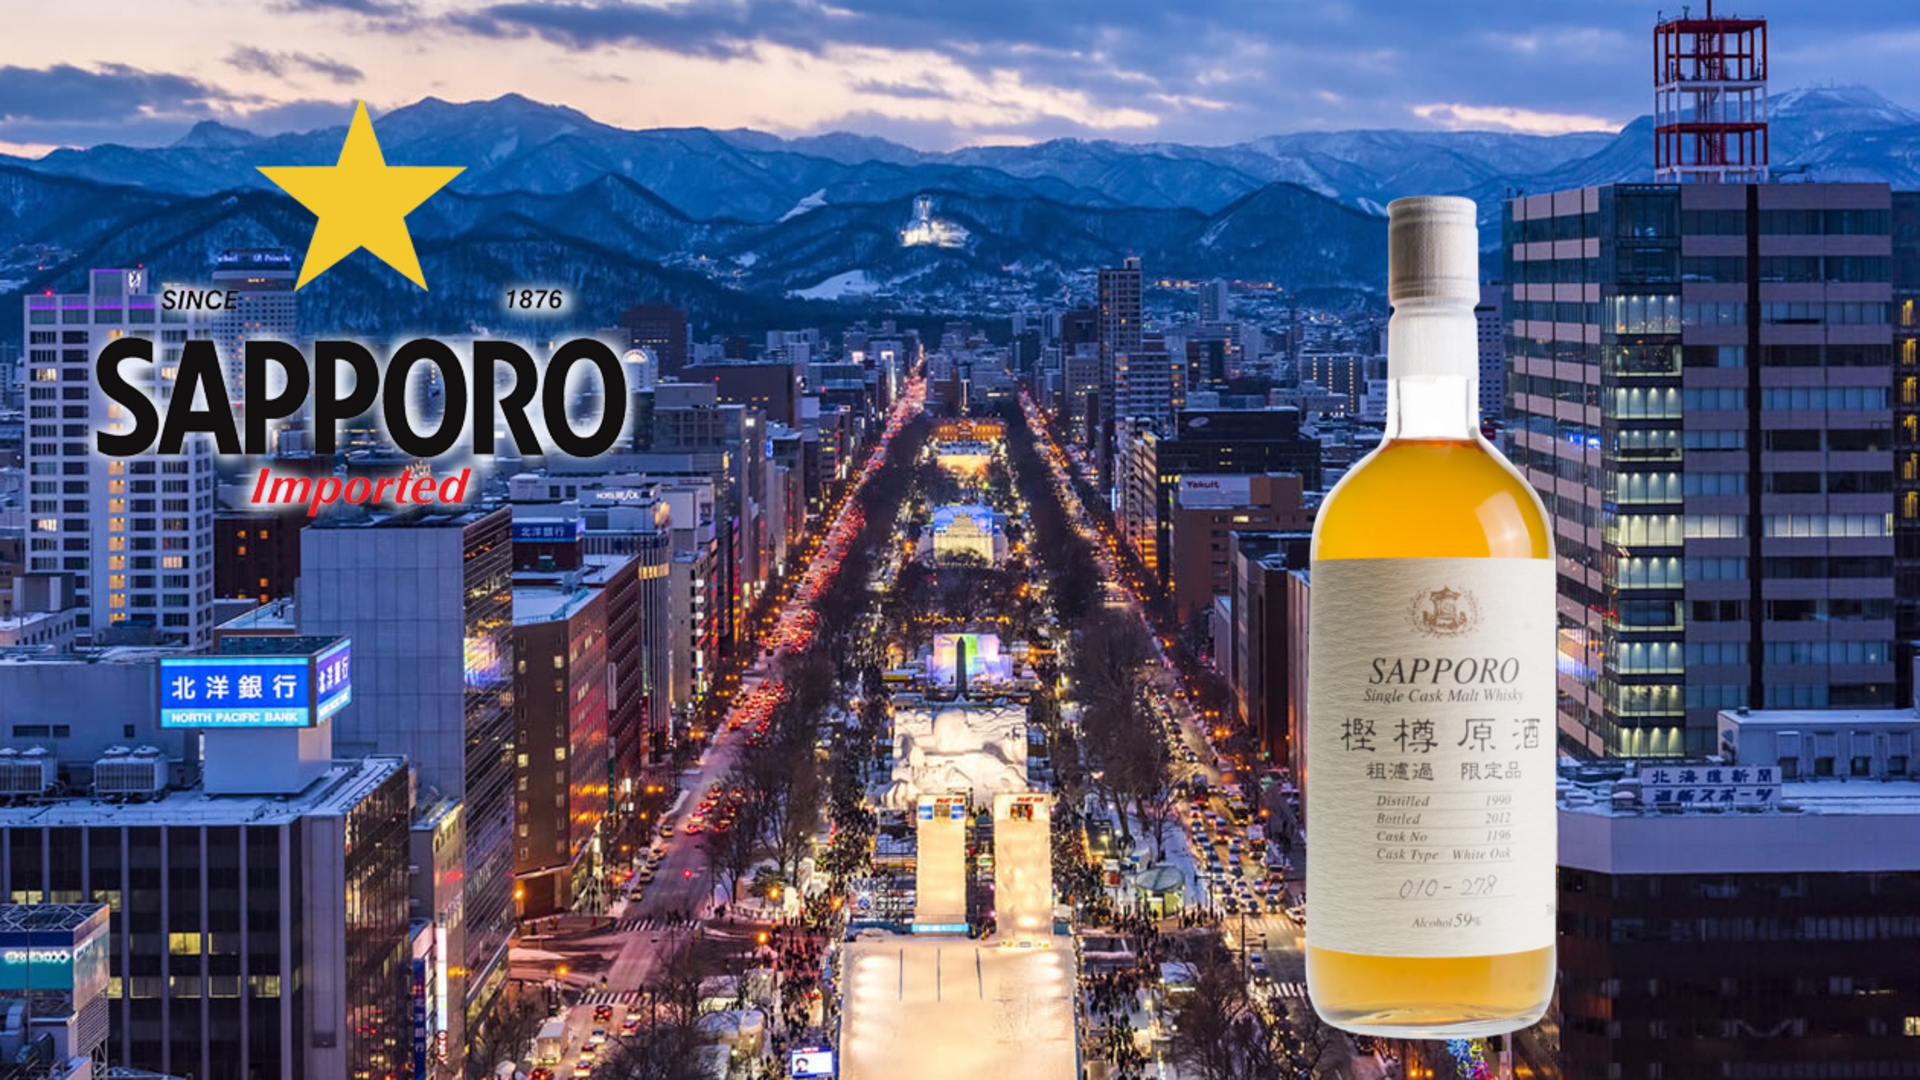 About sapporo